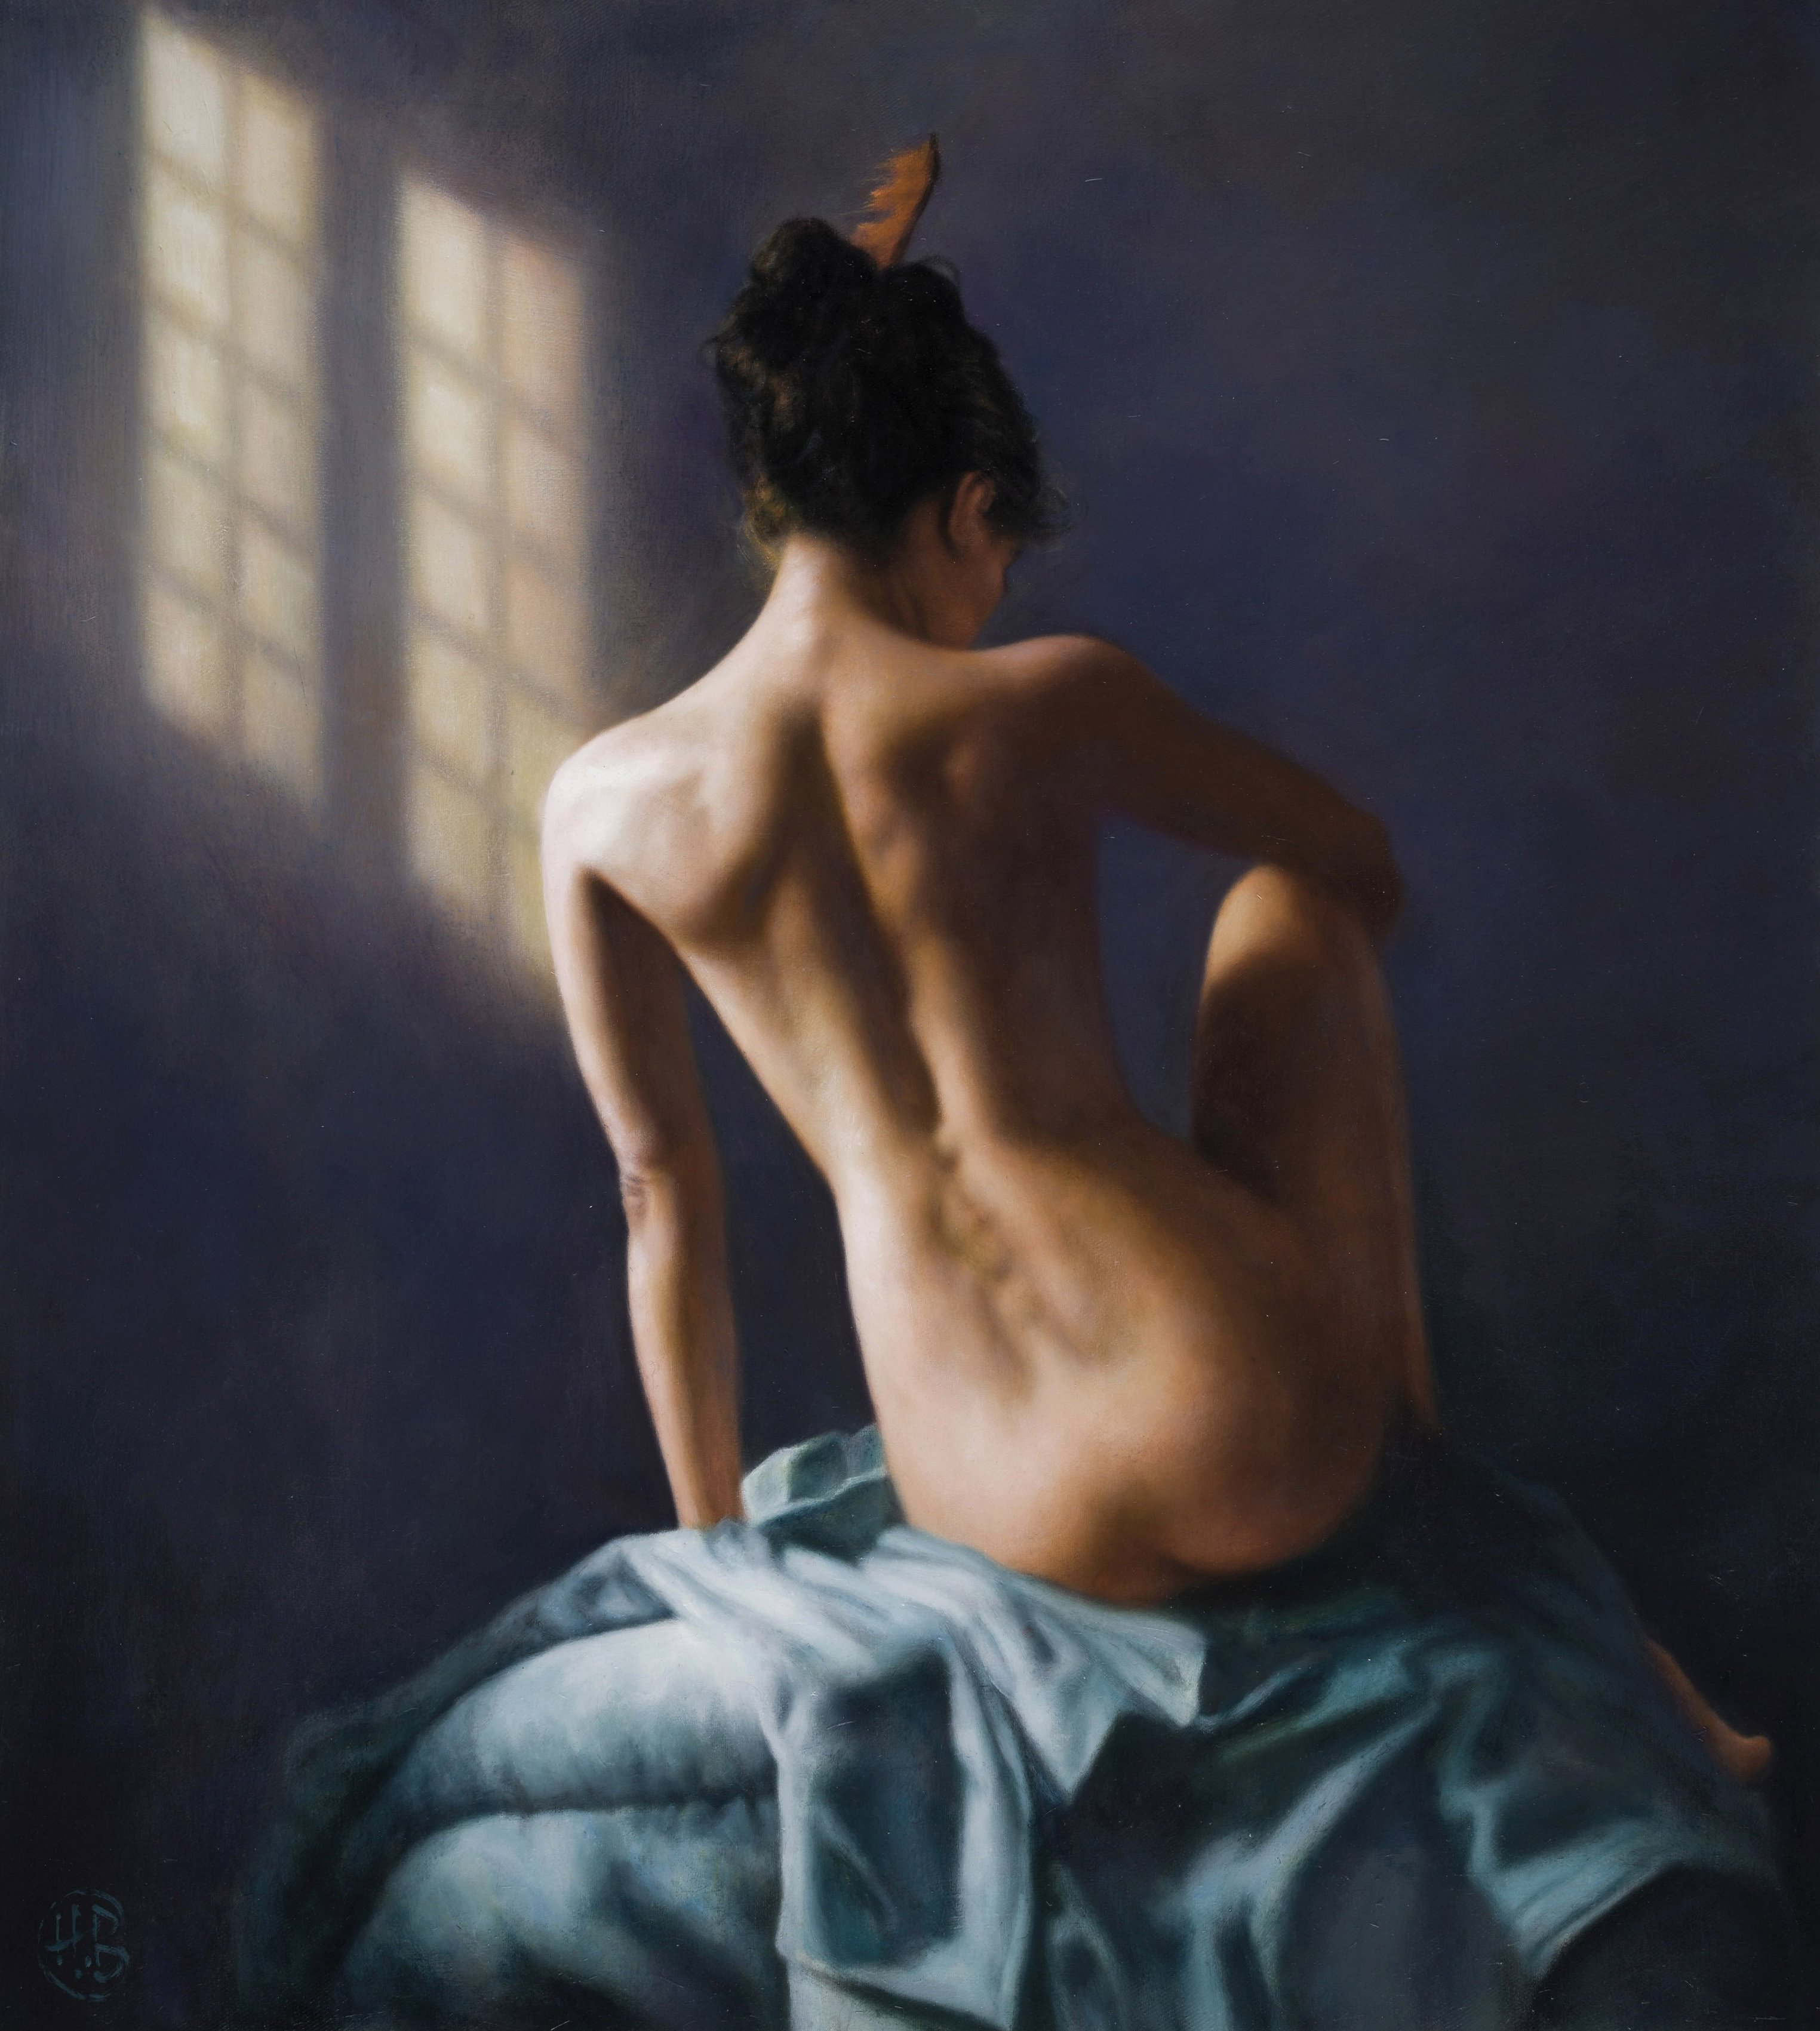 Like A Feather by Hamish Blakely